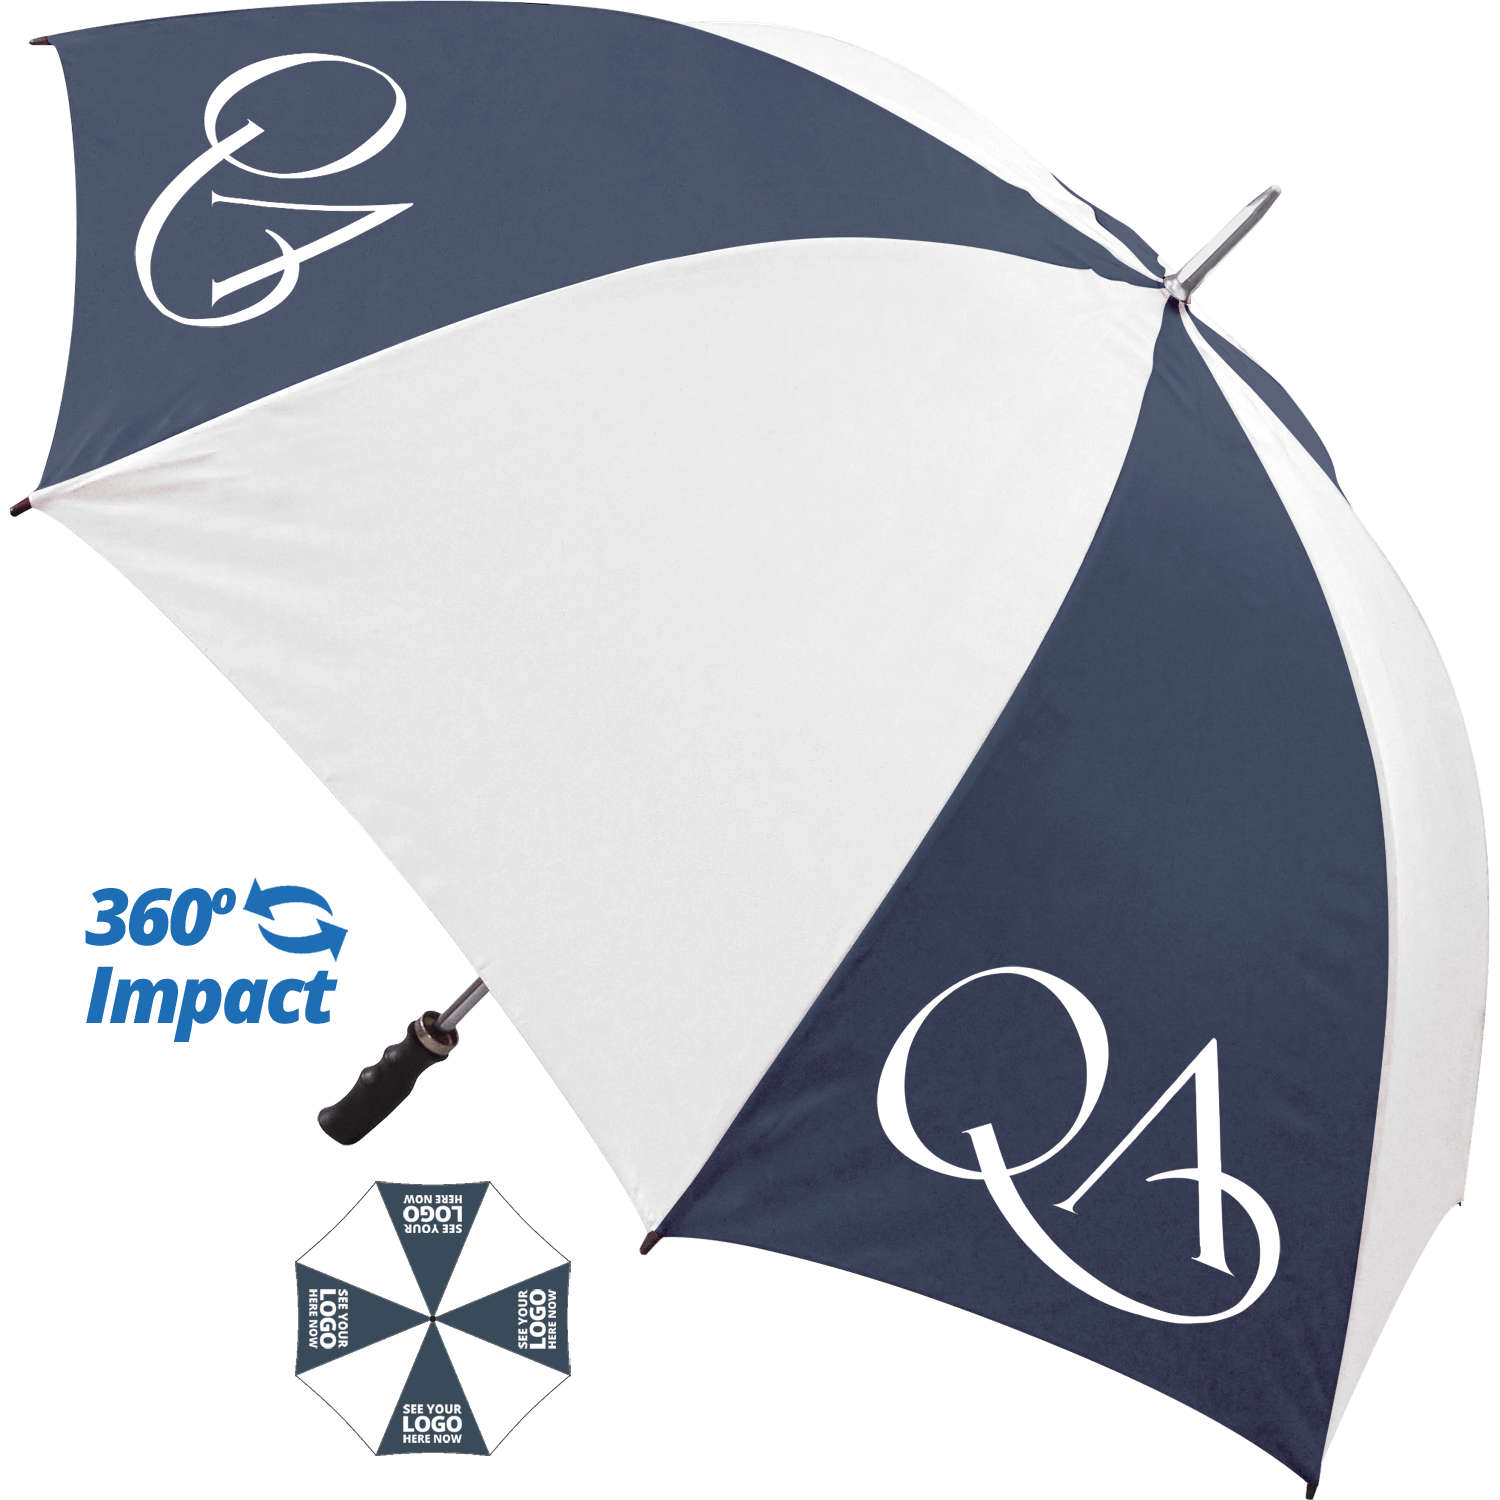 Navy Blue (2379) & White (printed on coloured panels)